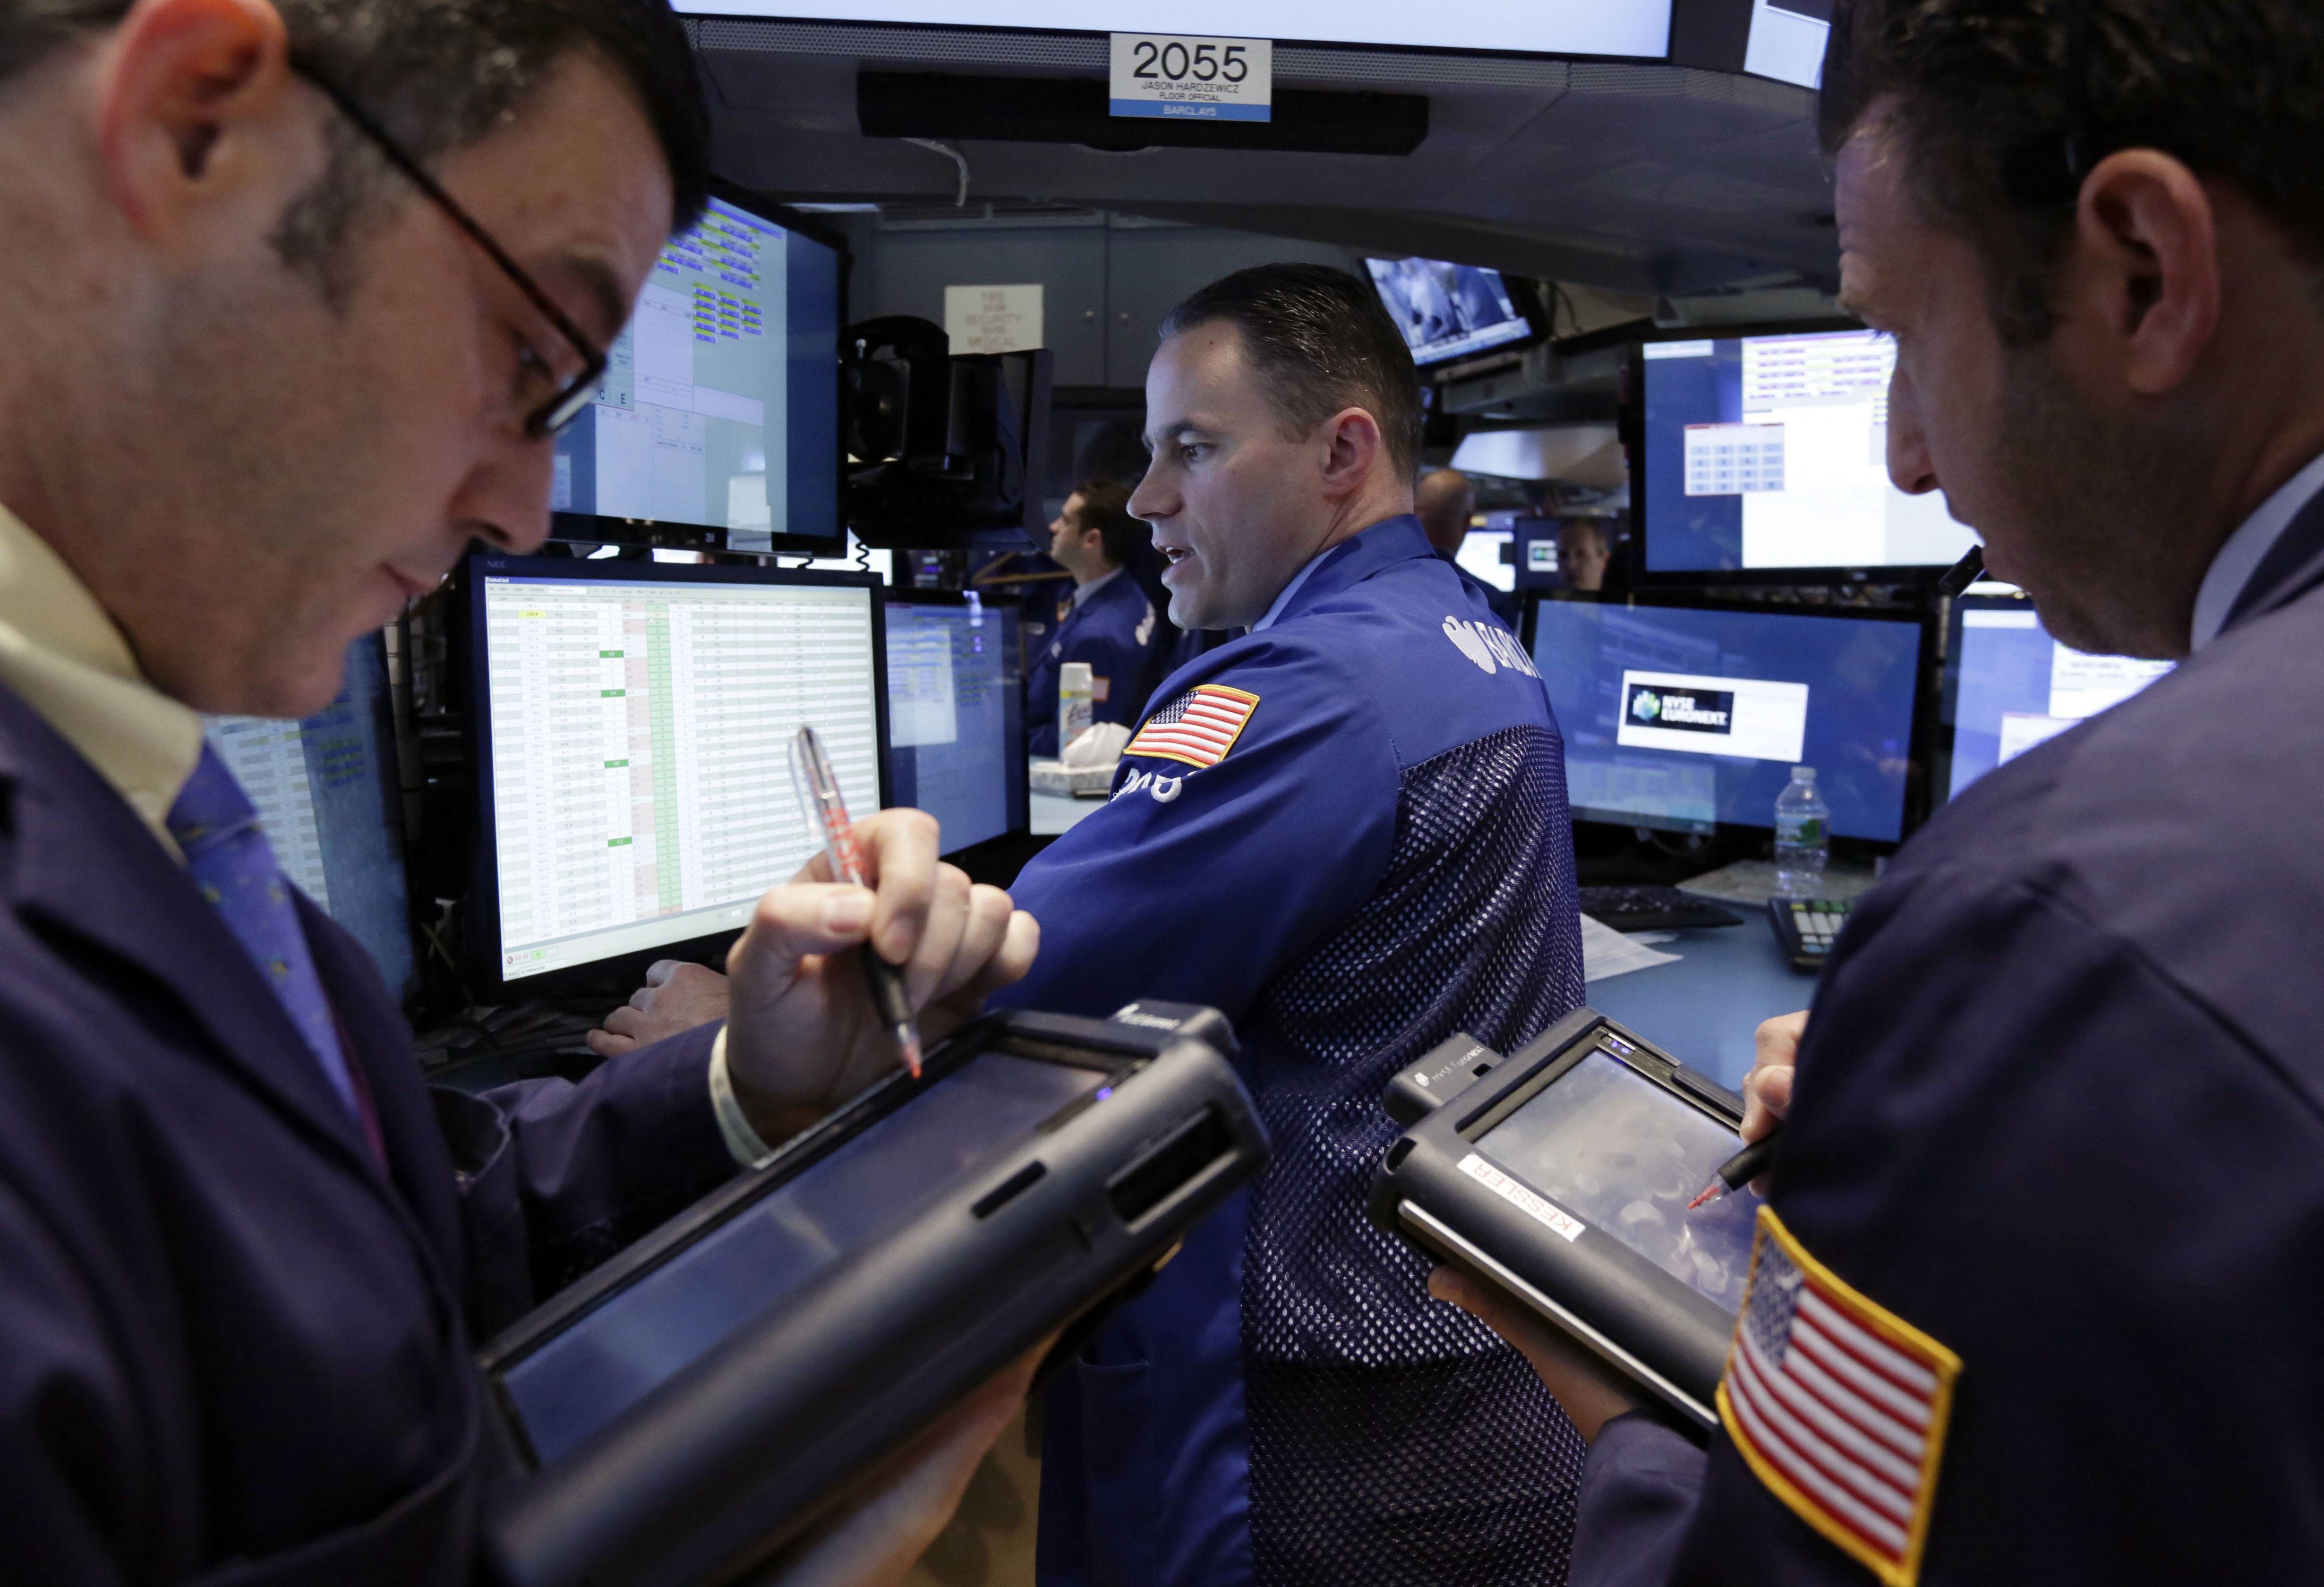 U.S. stocks rose Tuesday, as Internet stocks rallied for the first time in five days and results from Merck to Sprint topped estimates before a Federal Reserve decision on monetary policy.